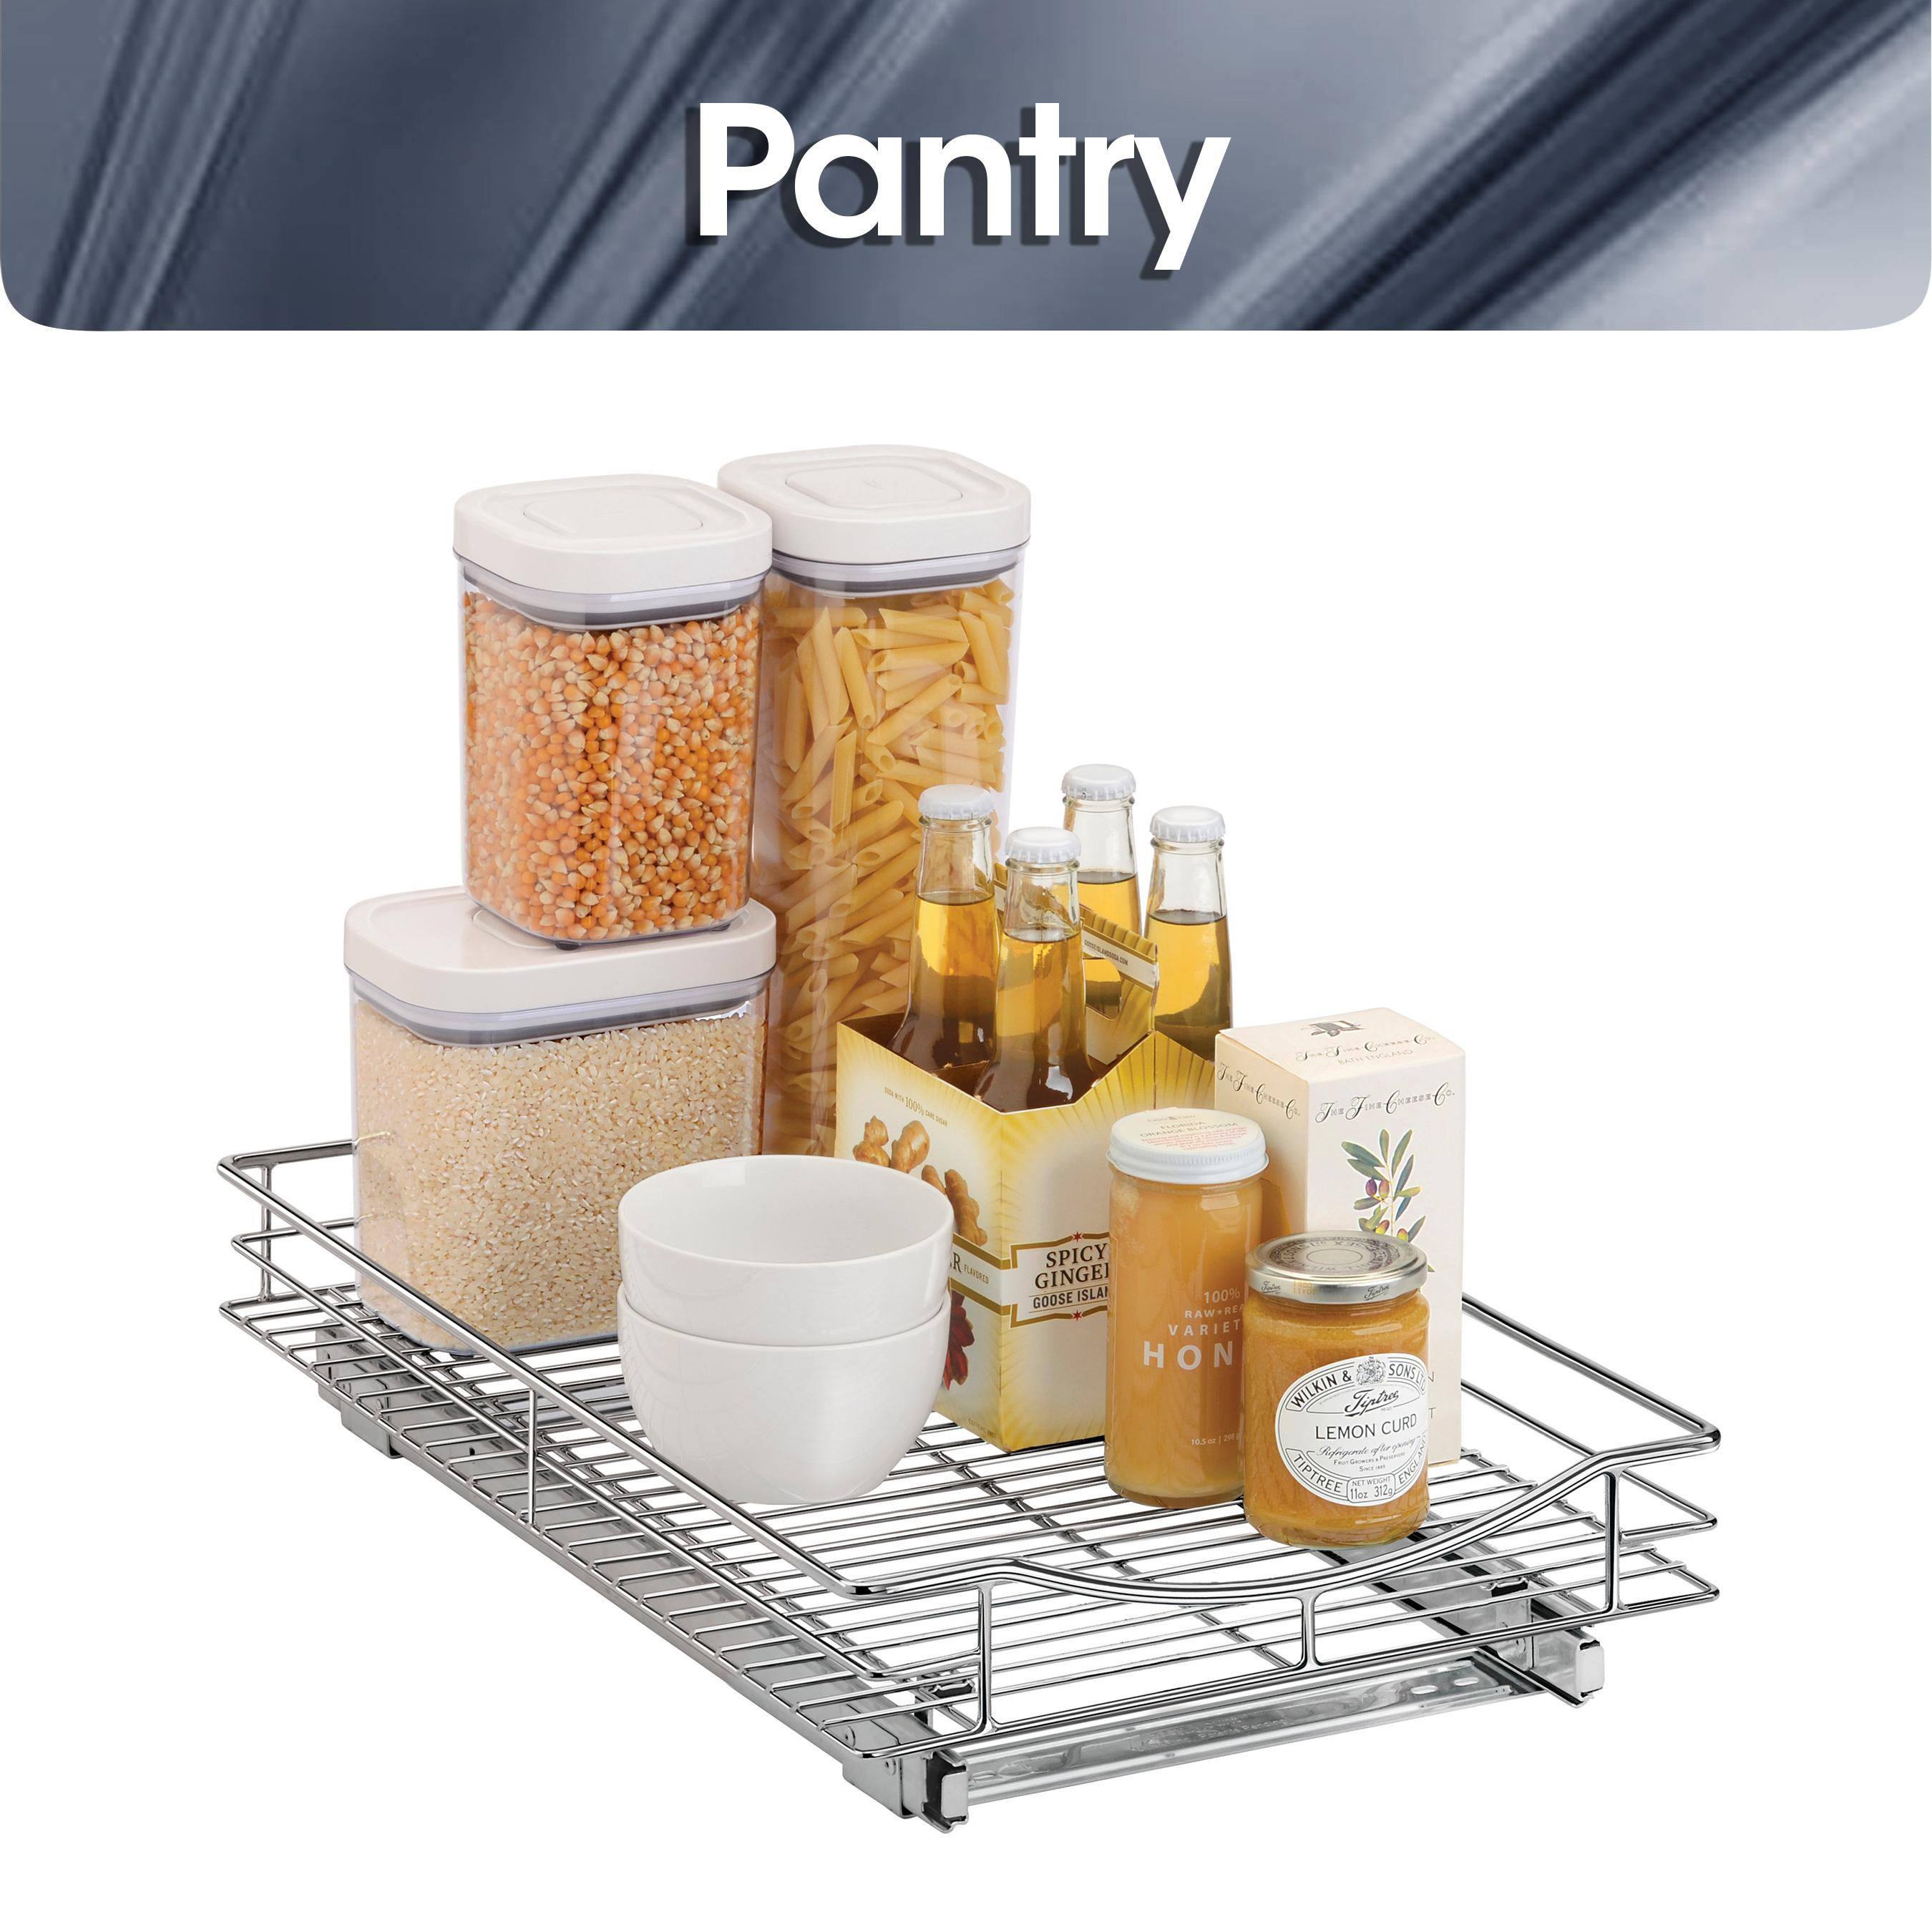 Lynk roll out under sink cabinet organizer pull out two tier sliding - Roll Out Pull Out Pantry Organizer View Larger